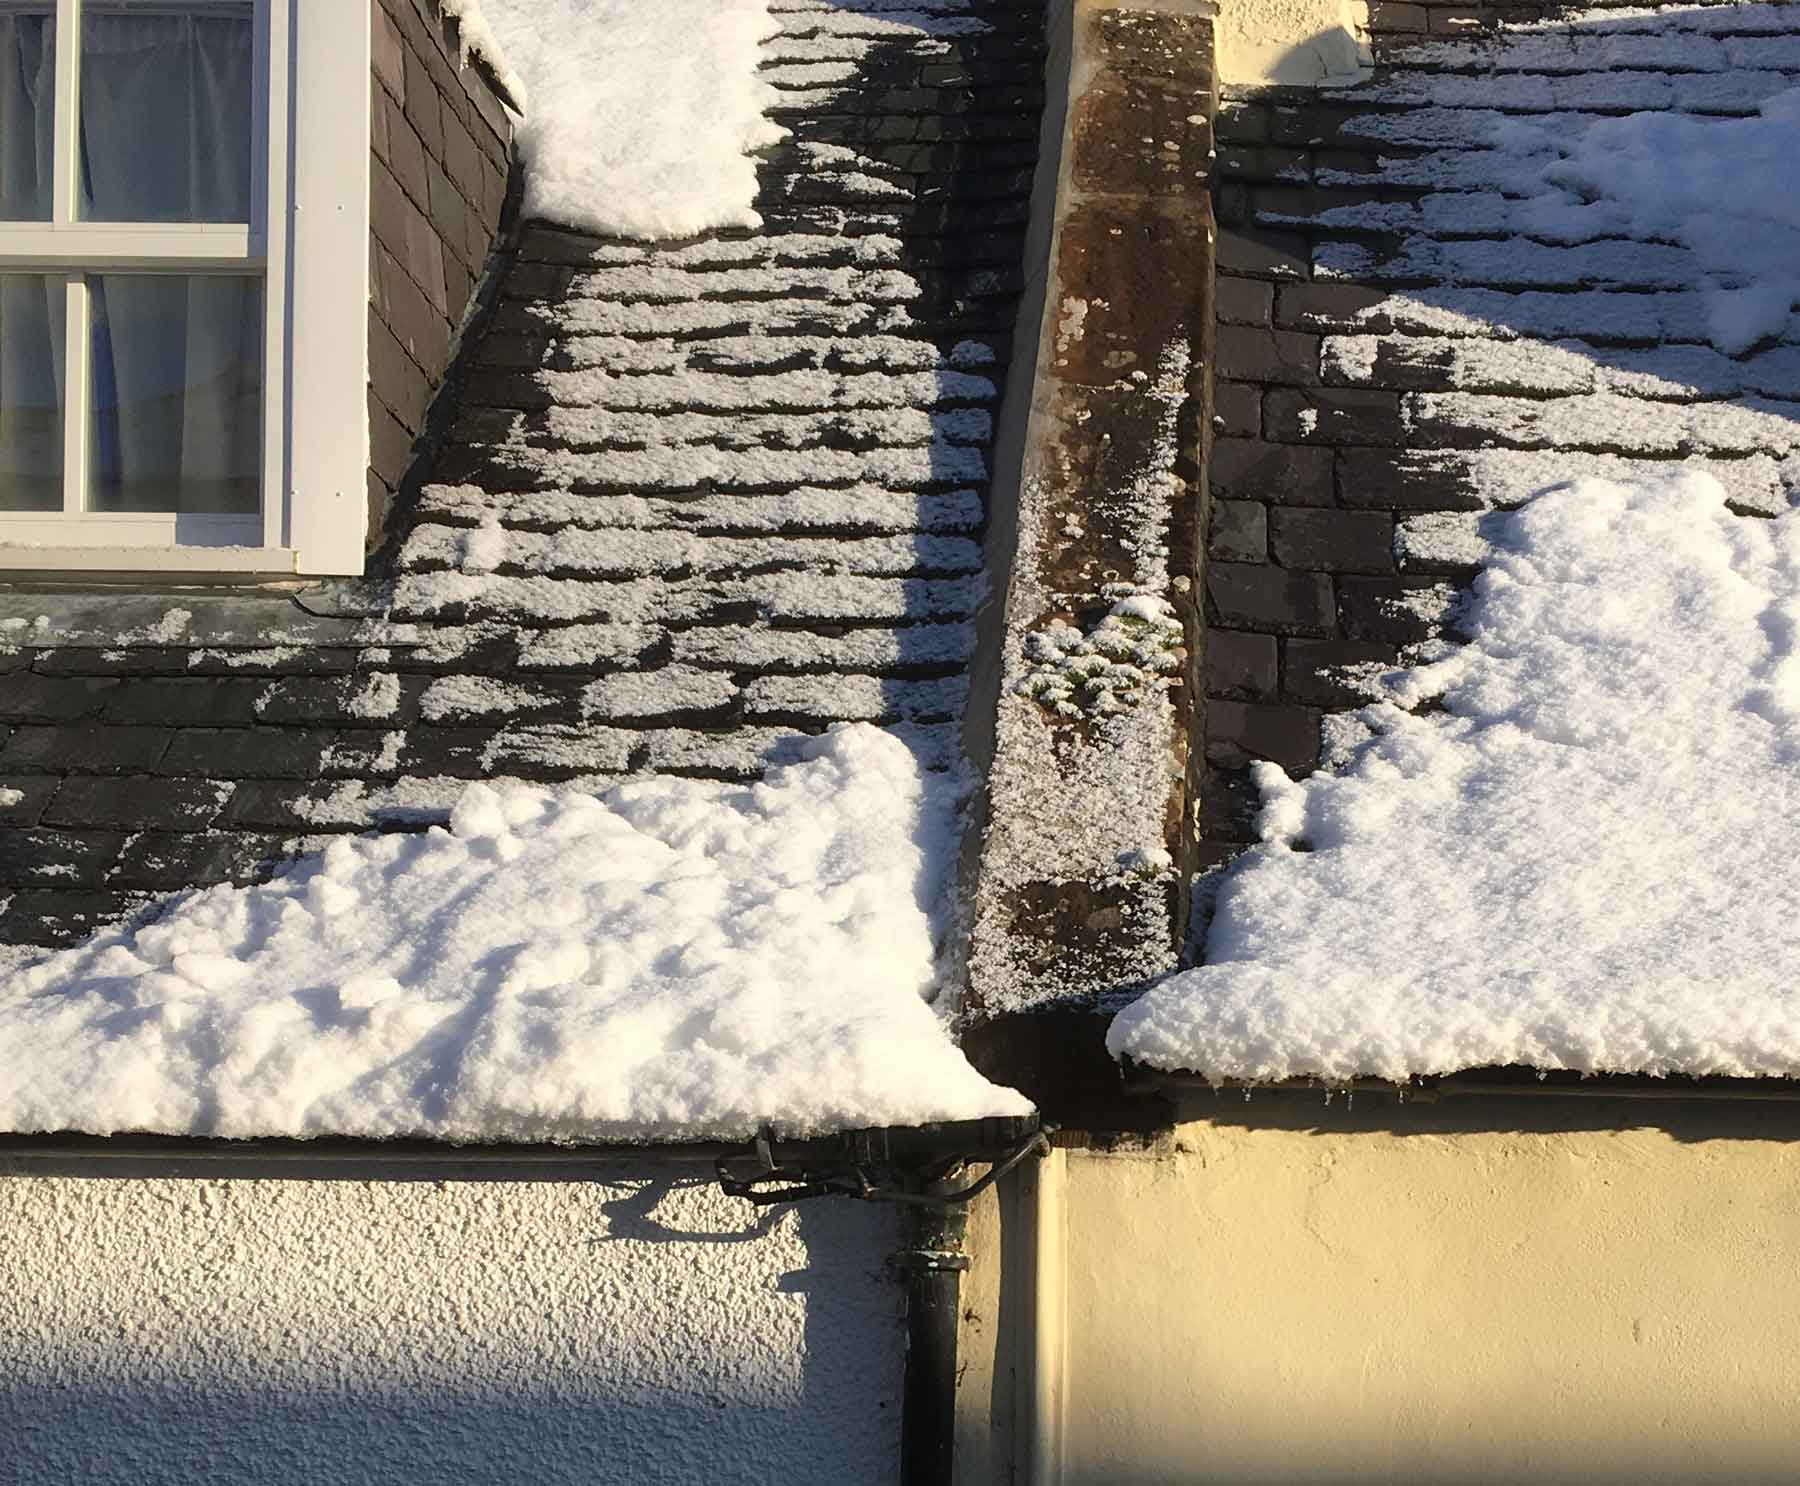 Snow resting on gutters causing them to distort